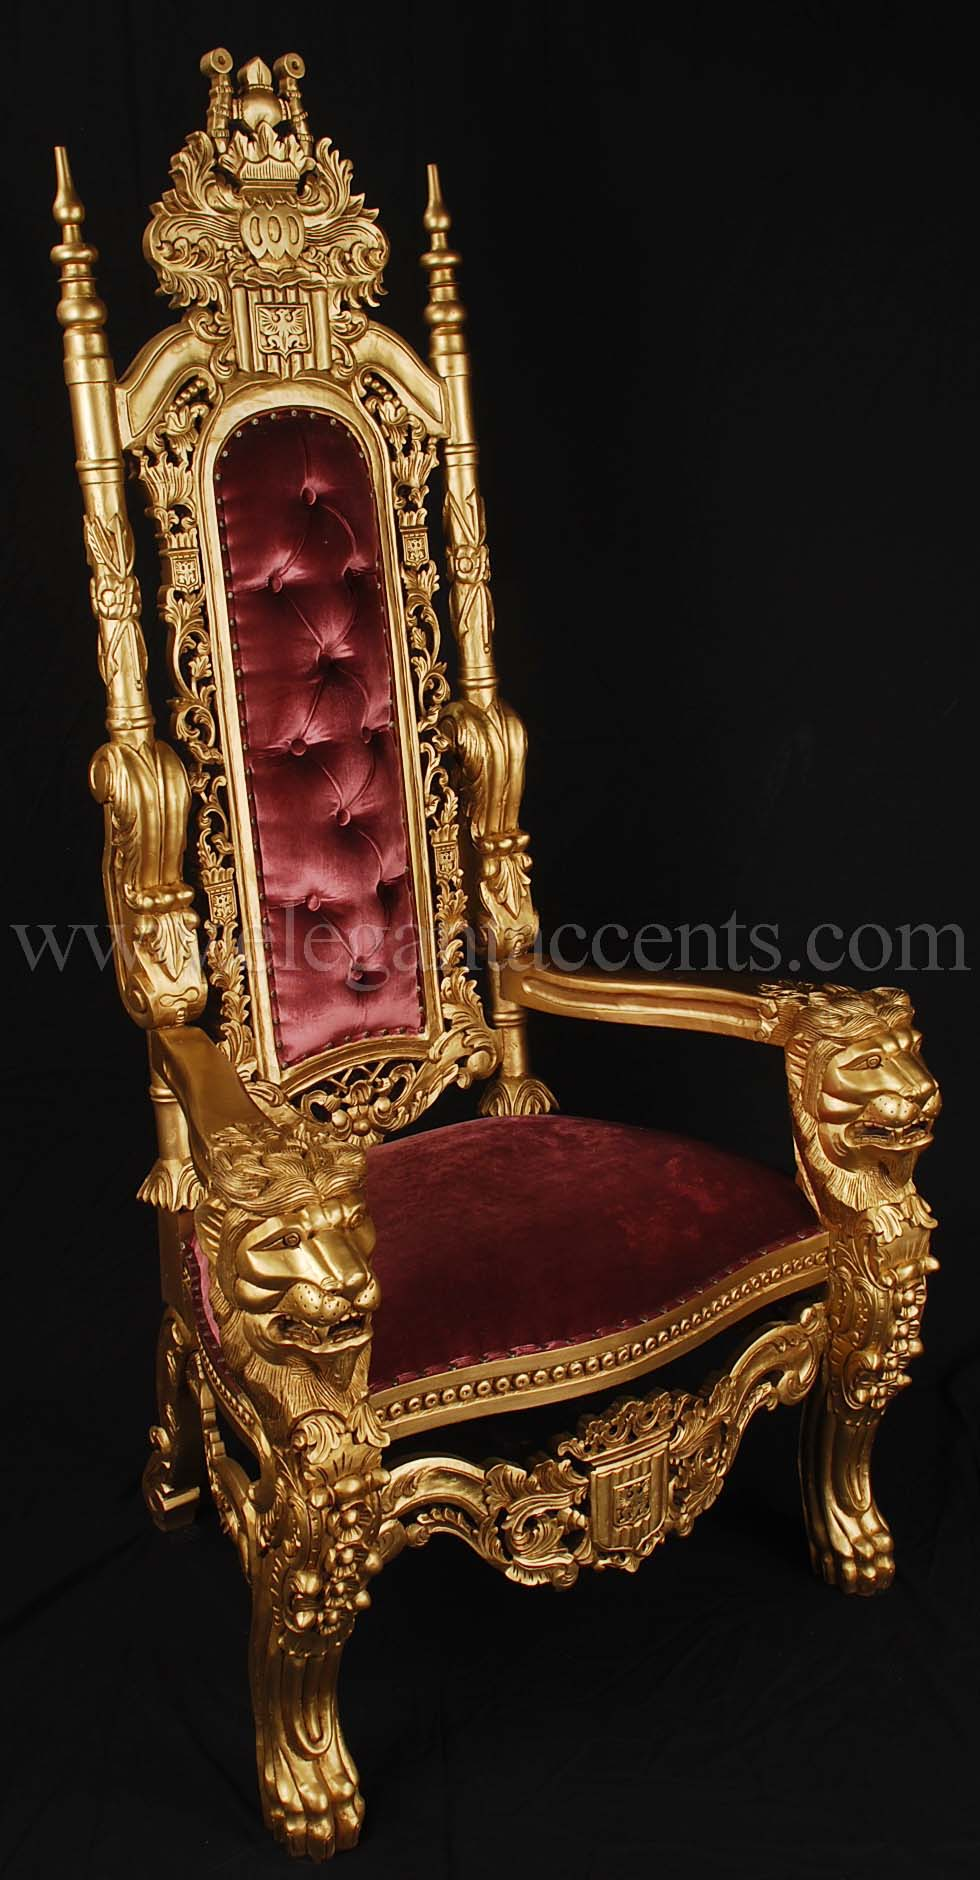 Gold kings chair - Products Gt Accent Chairs Amp Thrones Gt Throne Chairs